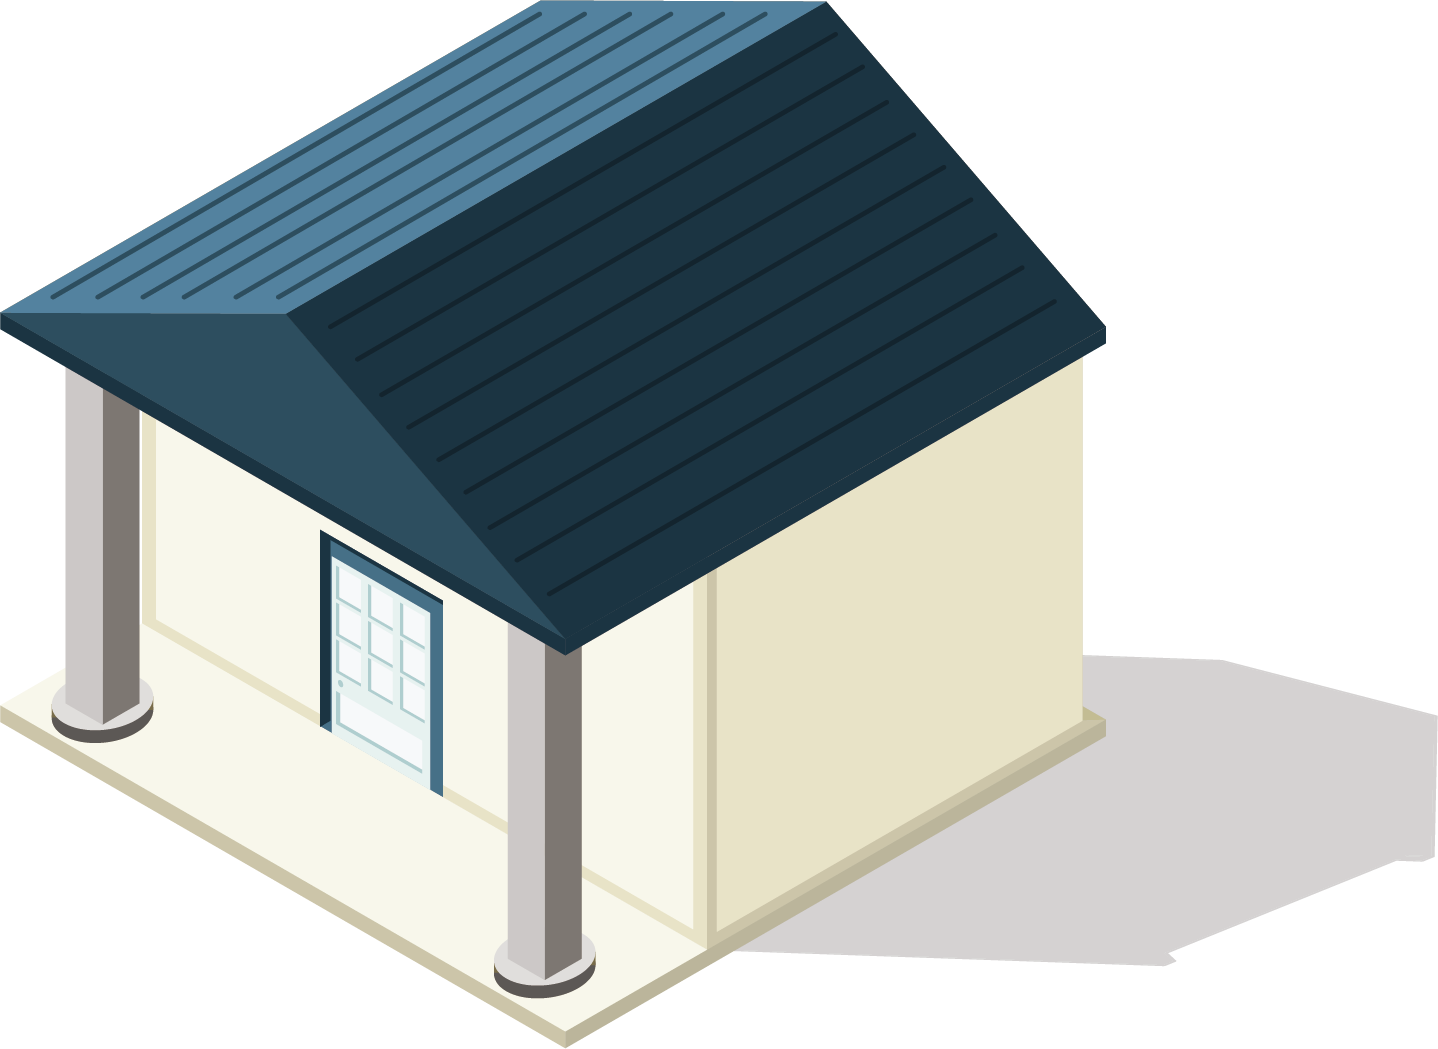 Web Scraping Solutions for Real Estate and Housing